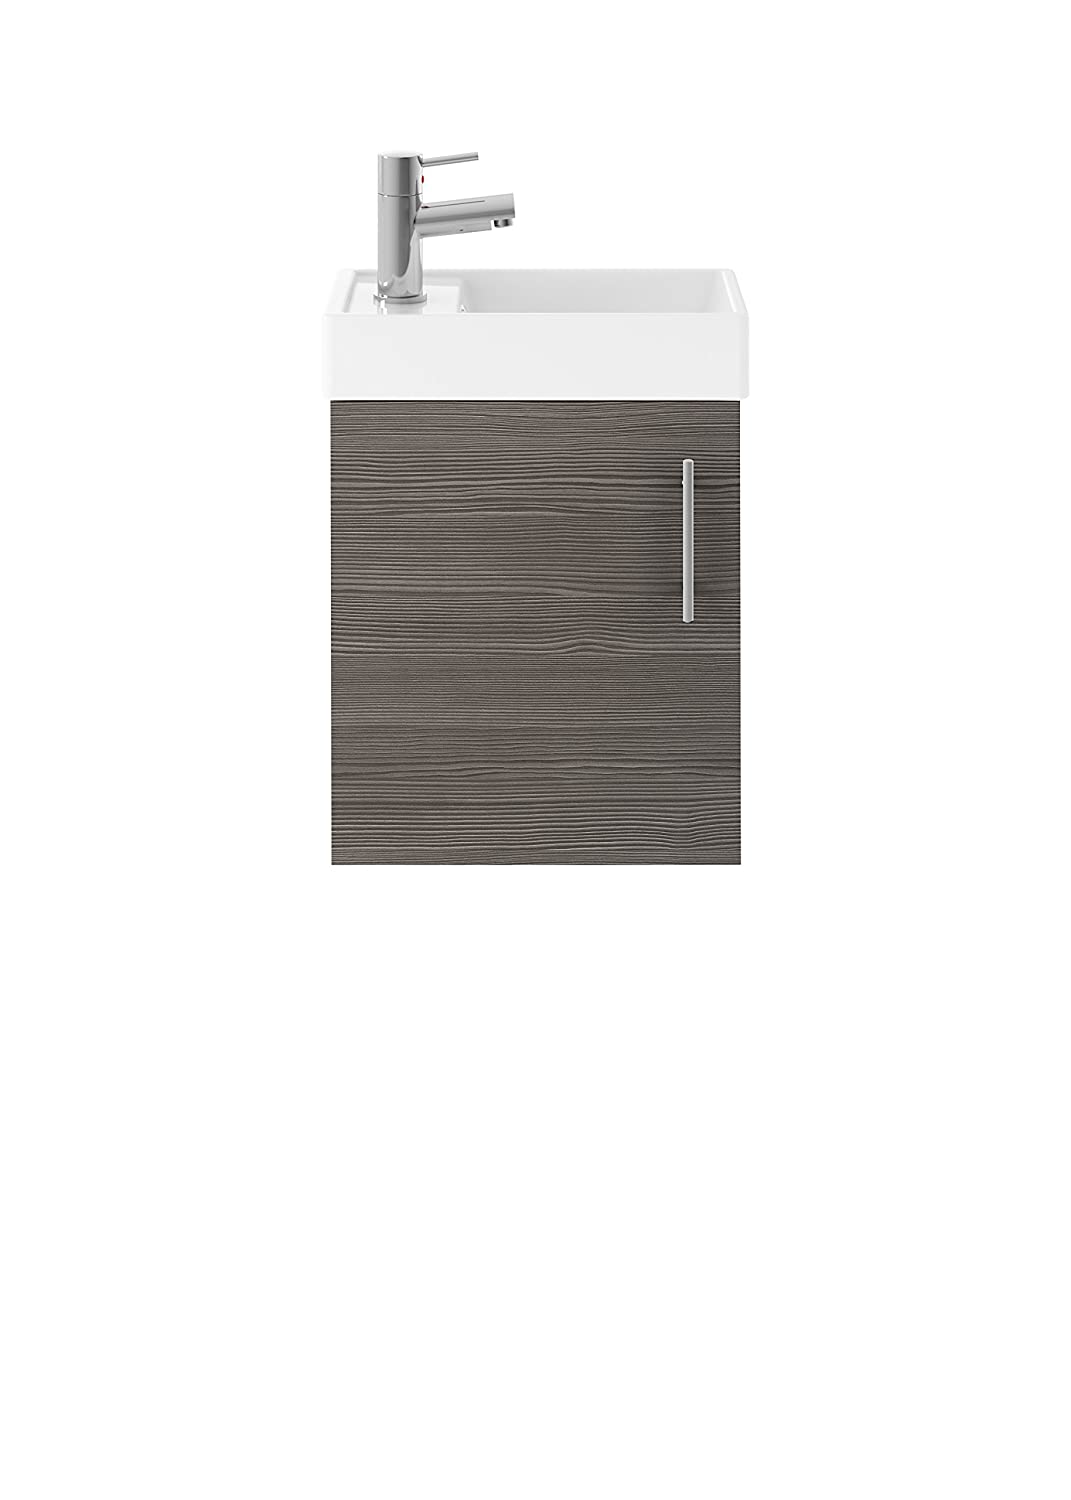 Driftwood Premier MIN009 Vault Compact Wall Hung Cabinet and Basin, Grey Avola, 400 mm, Set of 2 Pieces